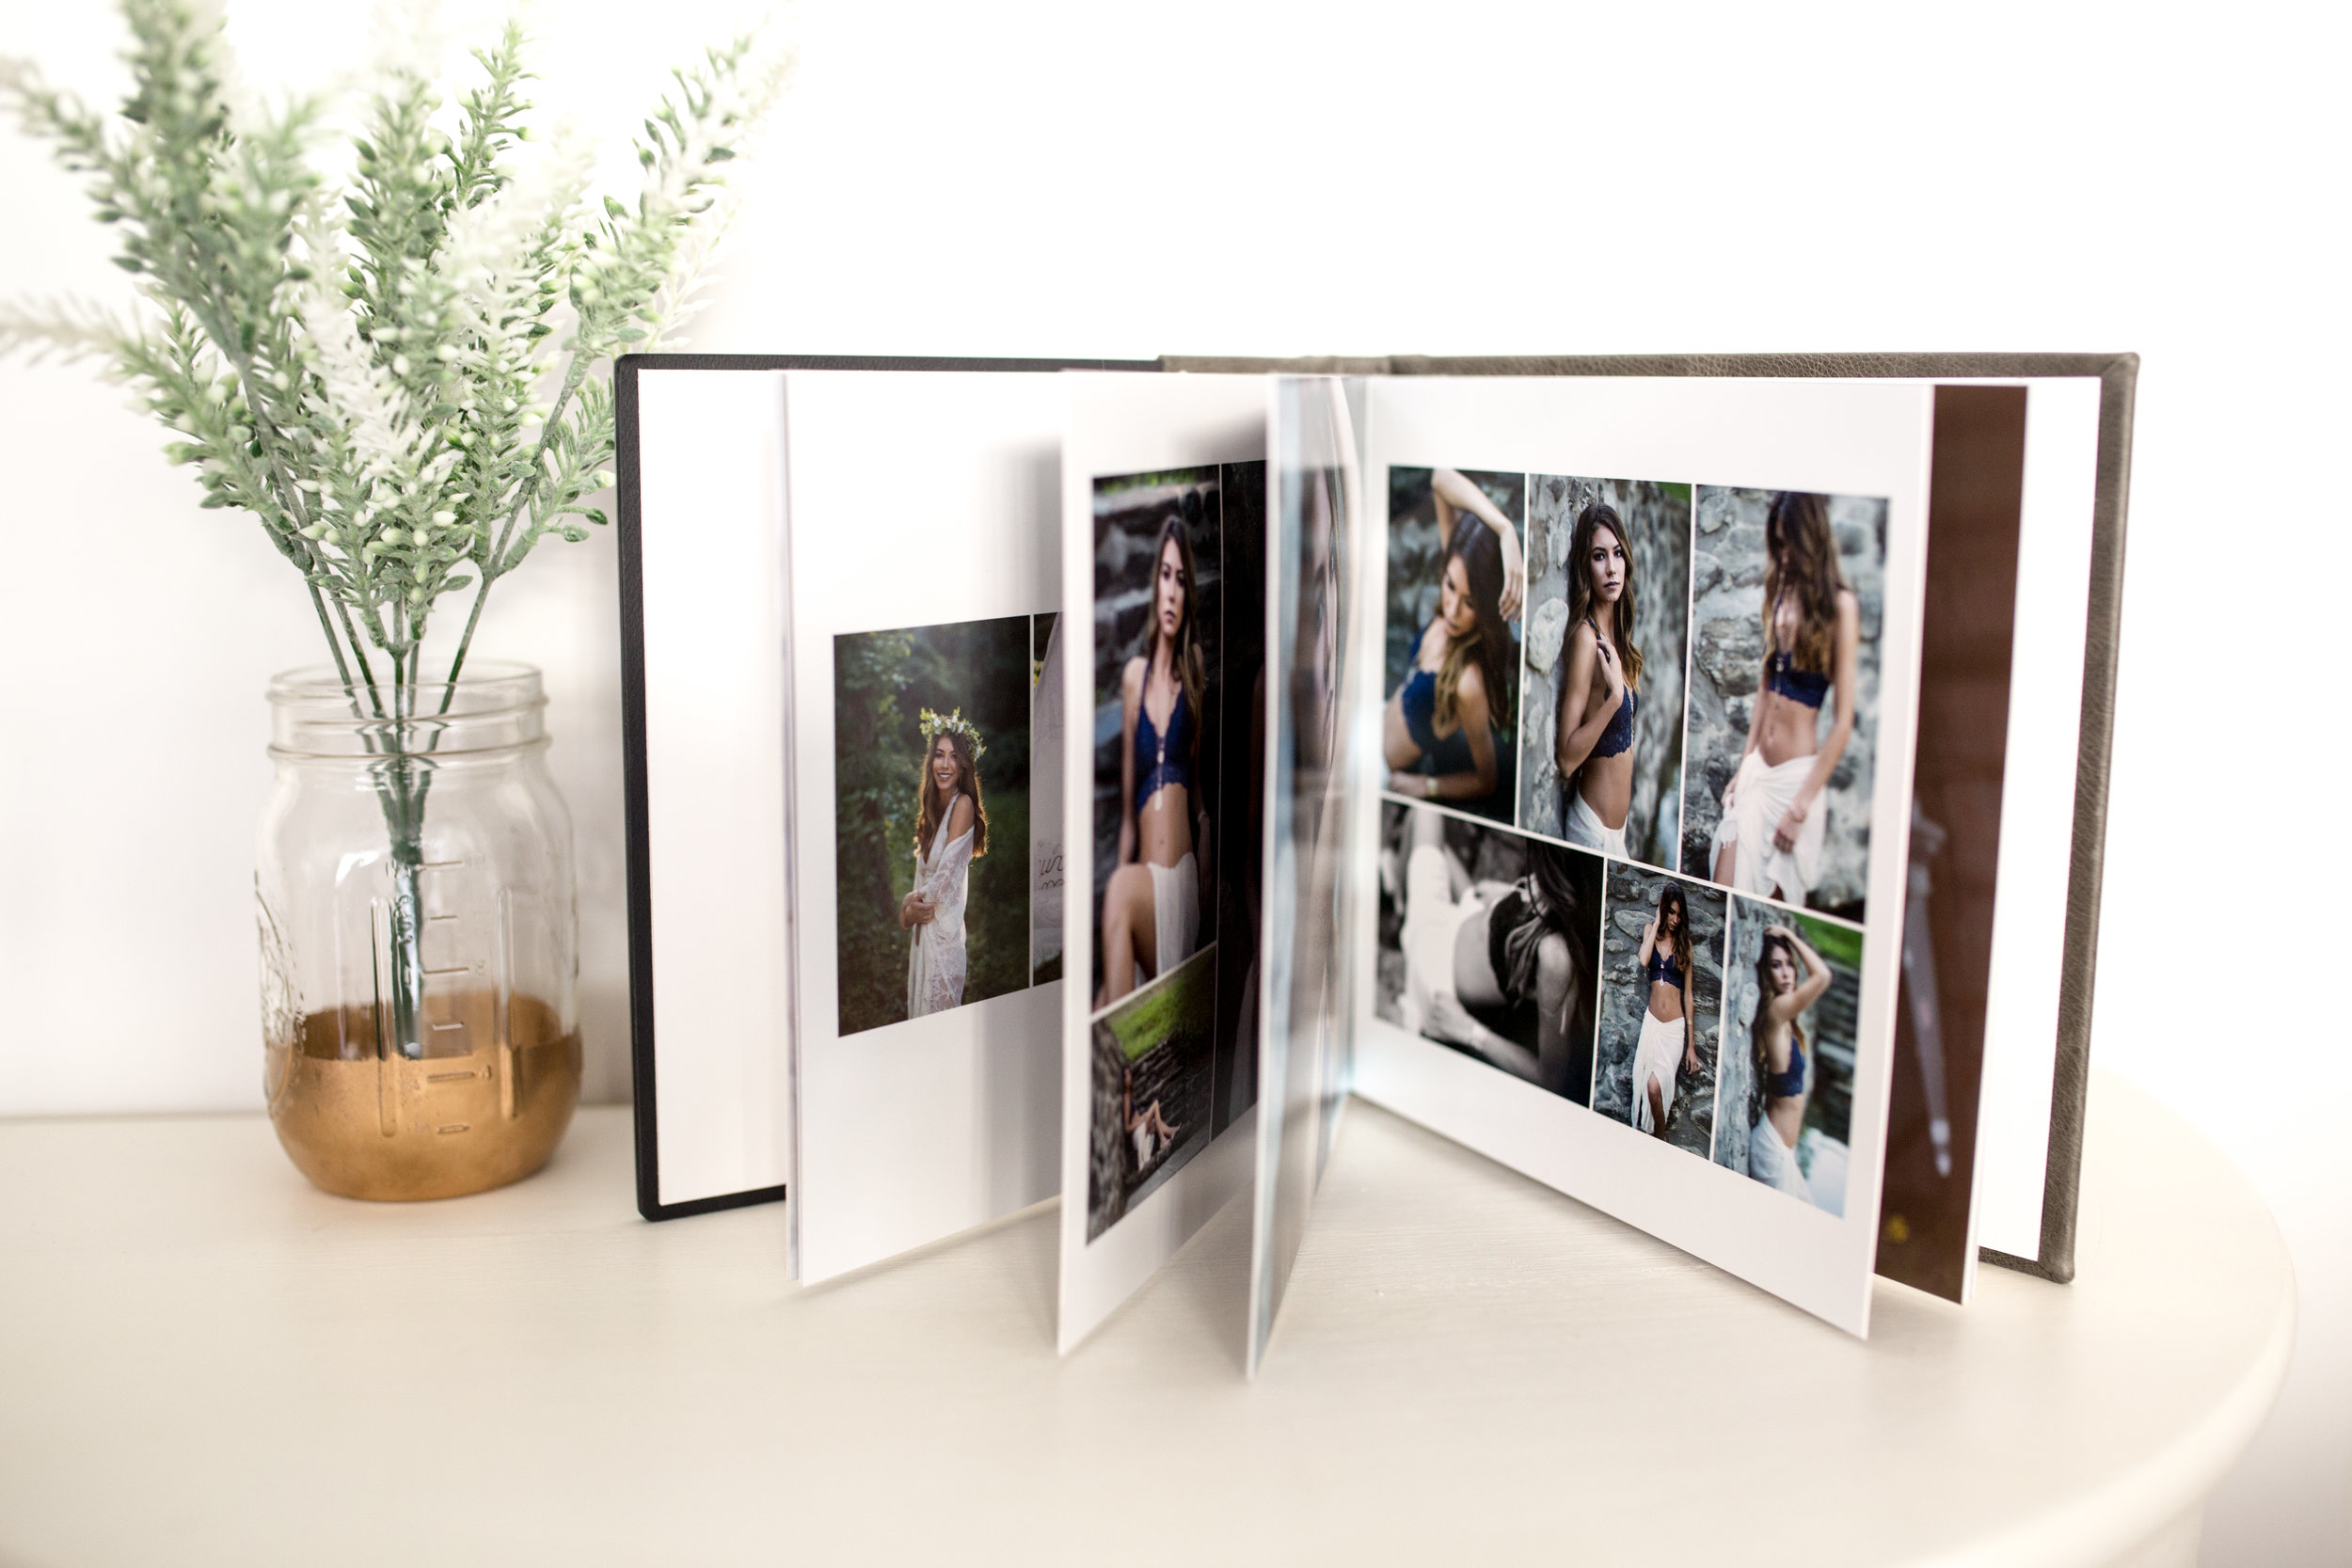 CRYSTAL ALBUM - Available in 3 sizes and fully customizable.Cover OptionsFull Wrap: Fabric wraps around (no cover image)Acrylic Cover: Partial fabric wrap with acrylic mounted cover image.Sizes:8x8 (20 Images)……………...…$129510x10 (30 Images)……………....$169512x12 (40 Images)…………….....$2195Album Add-On'sAdditional Spread (3 images)….$150.00/spread5x5 mini-duplicate book ……....$495